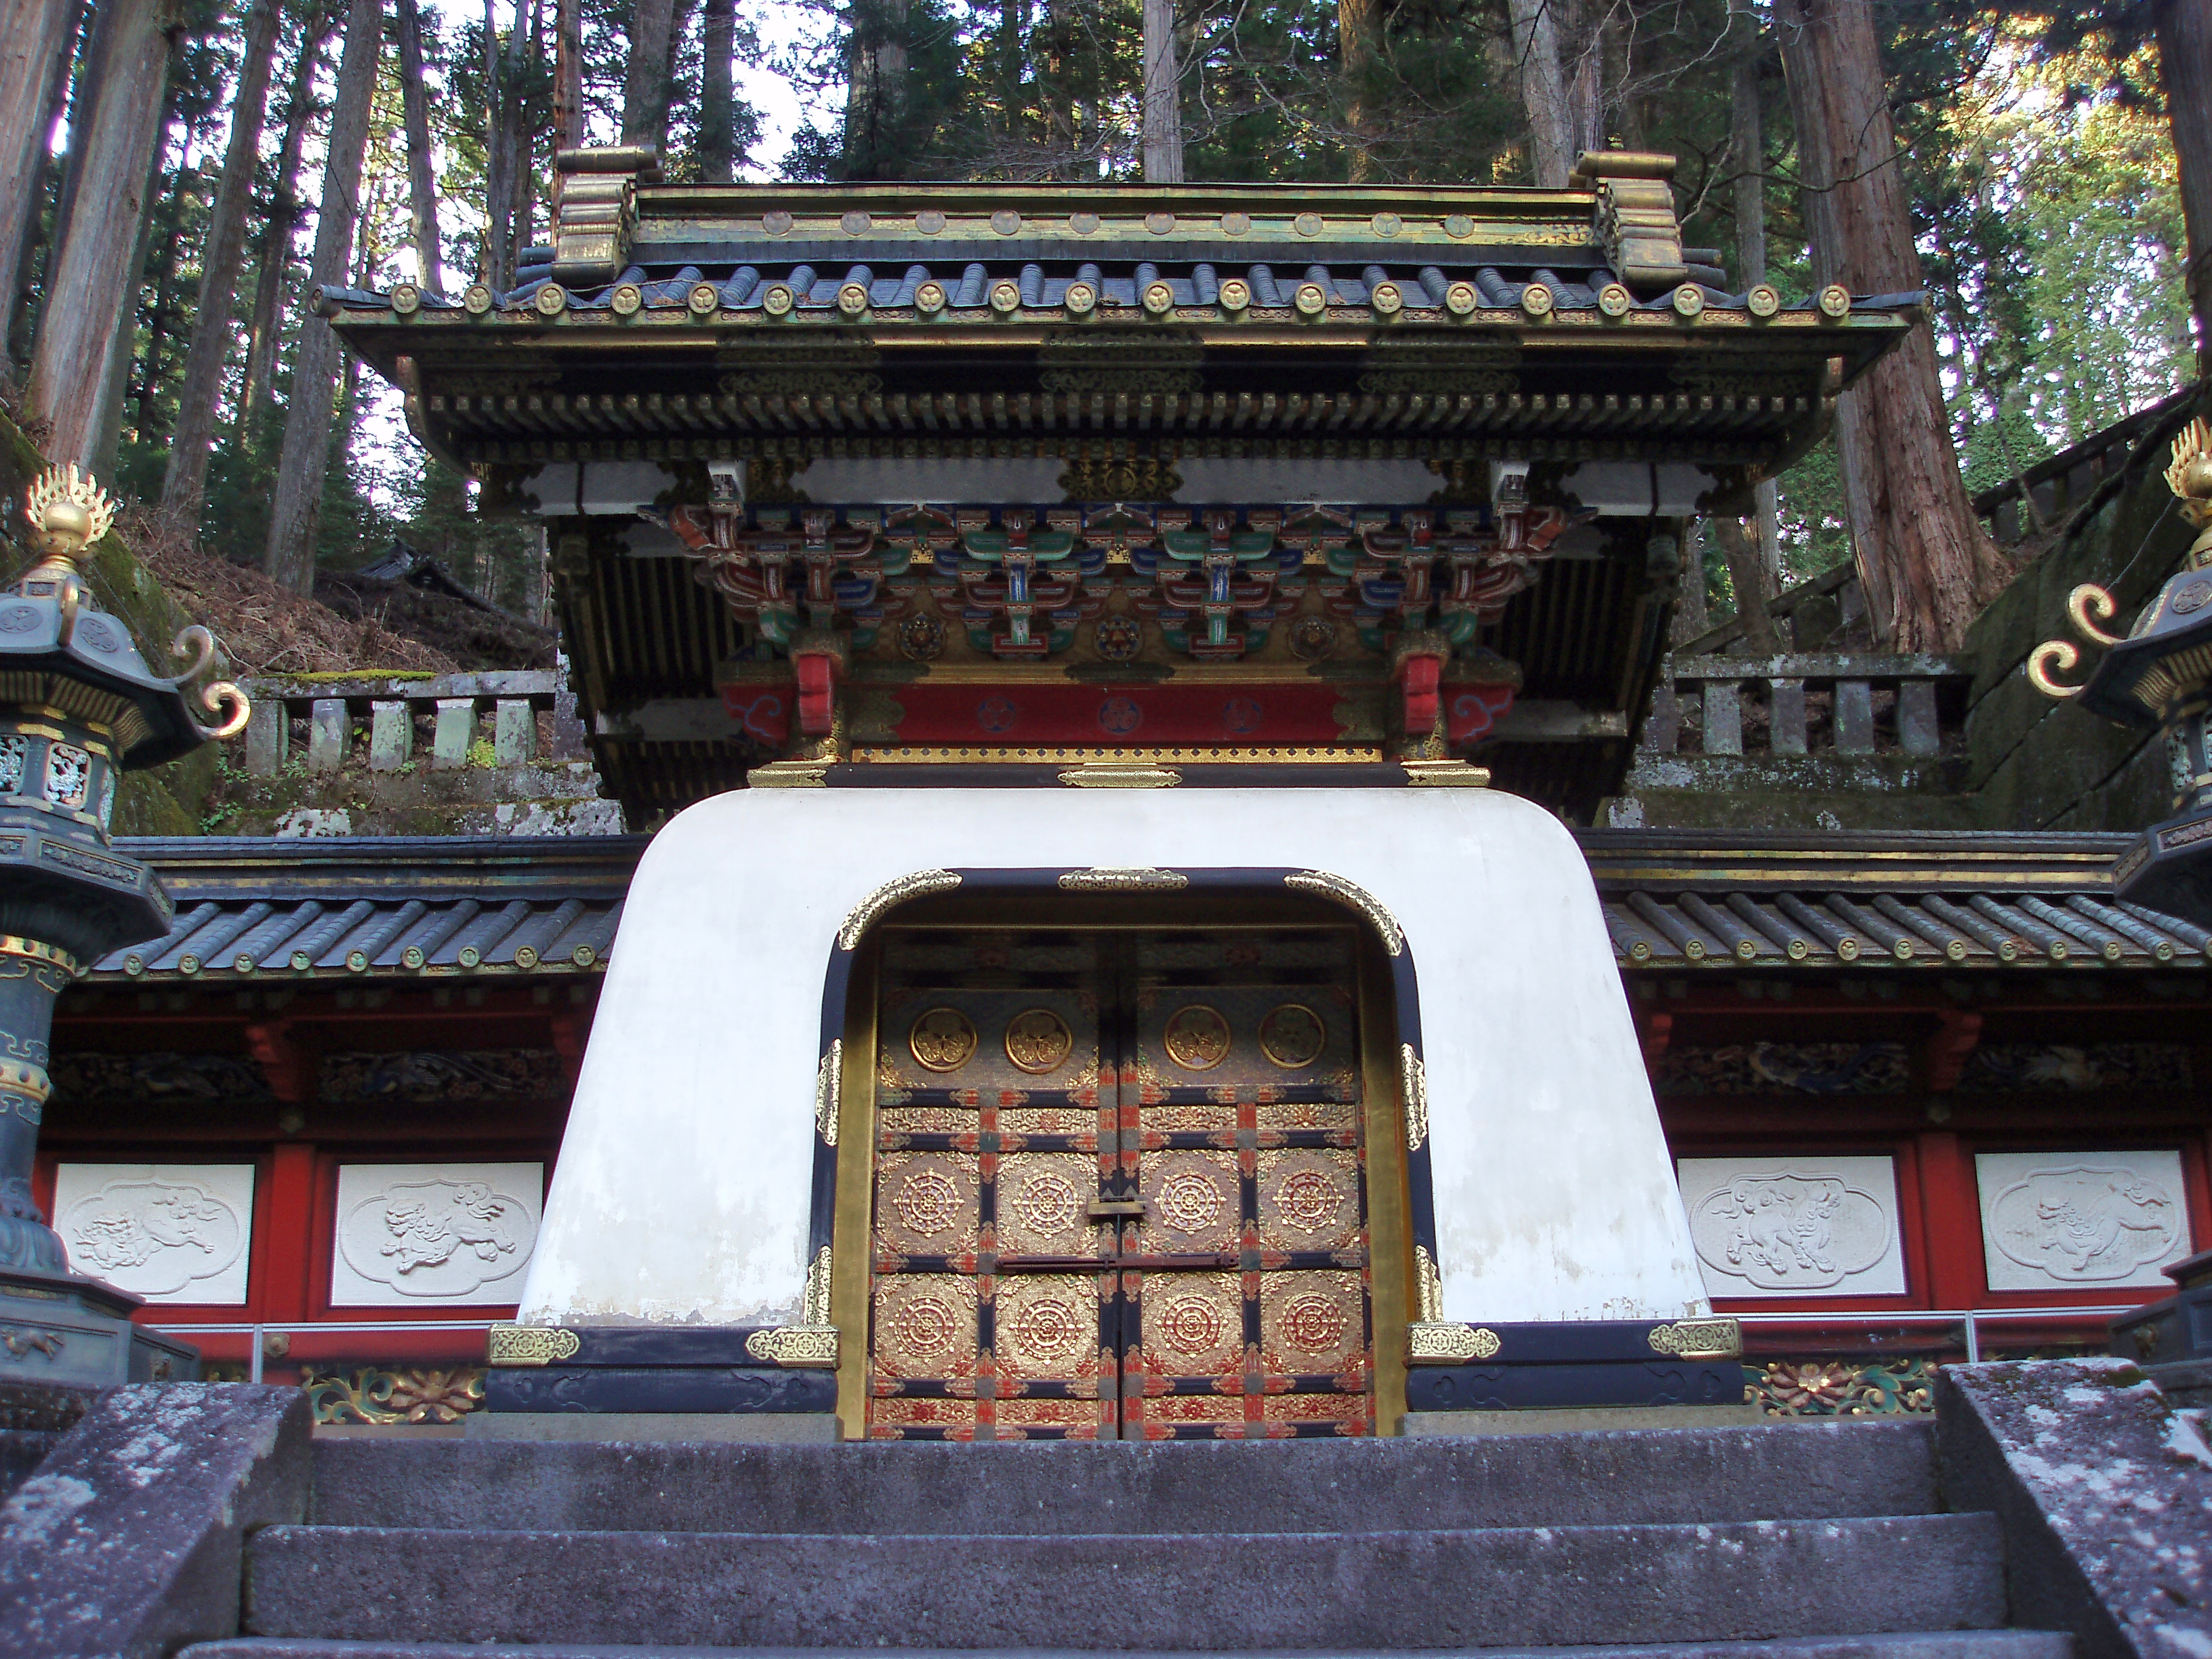 entrance door to the sacred temples at nikko